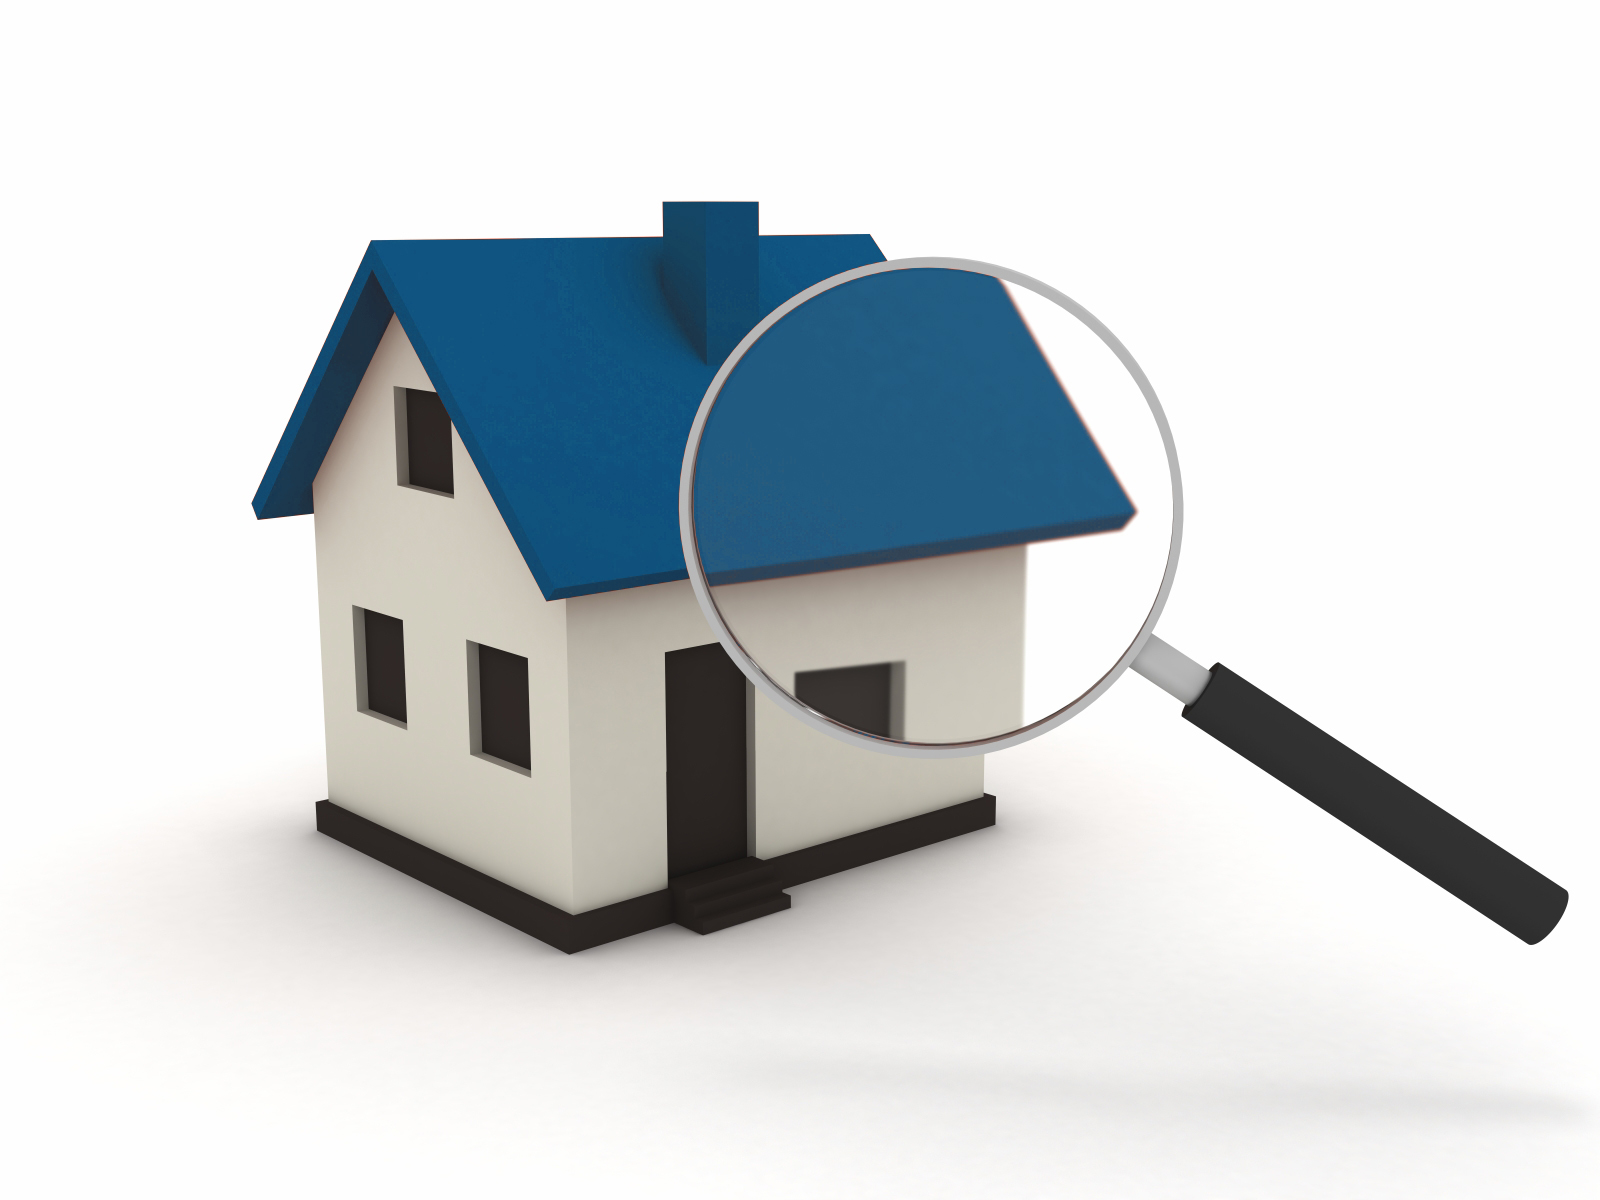 https://assets.boxdice.com.au/nidd/attachments/bb2/771/home_inspection_magnifying_glass.jpg?4af3cd42cdb429002b43940cfb506b94